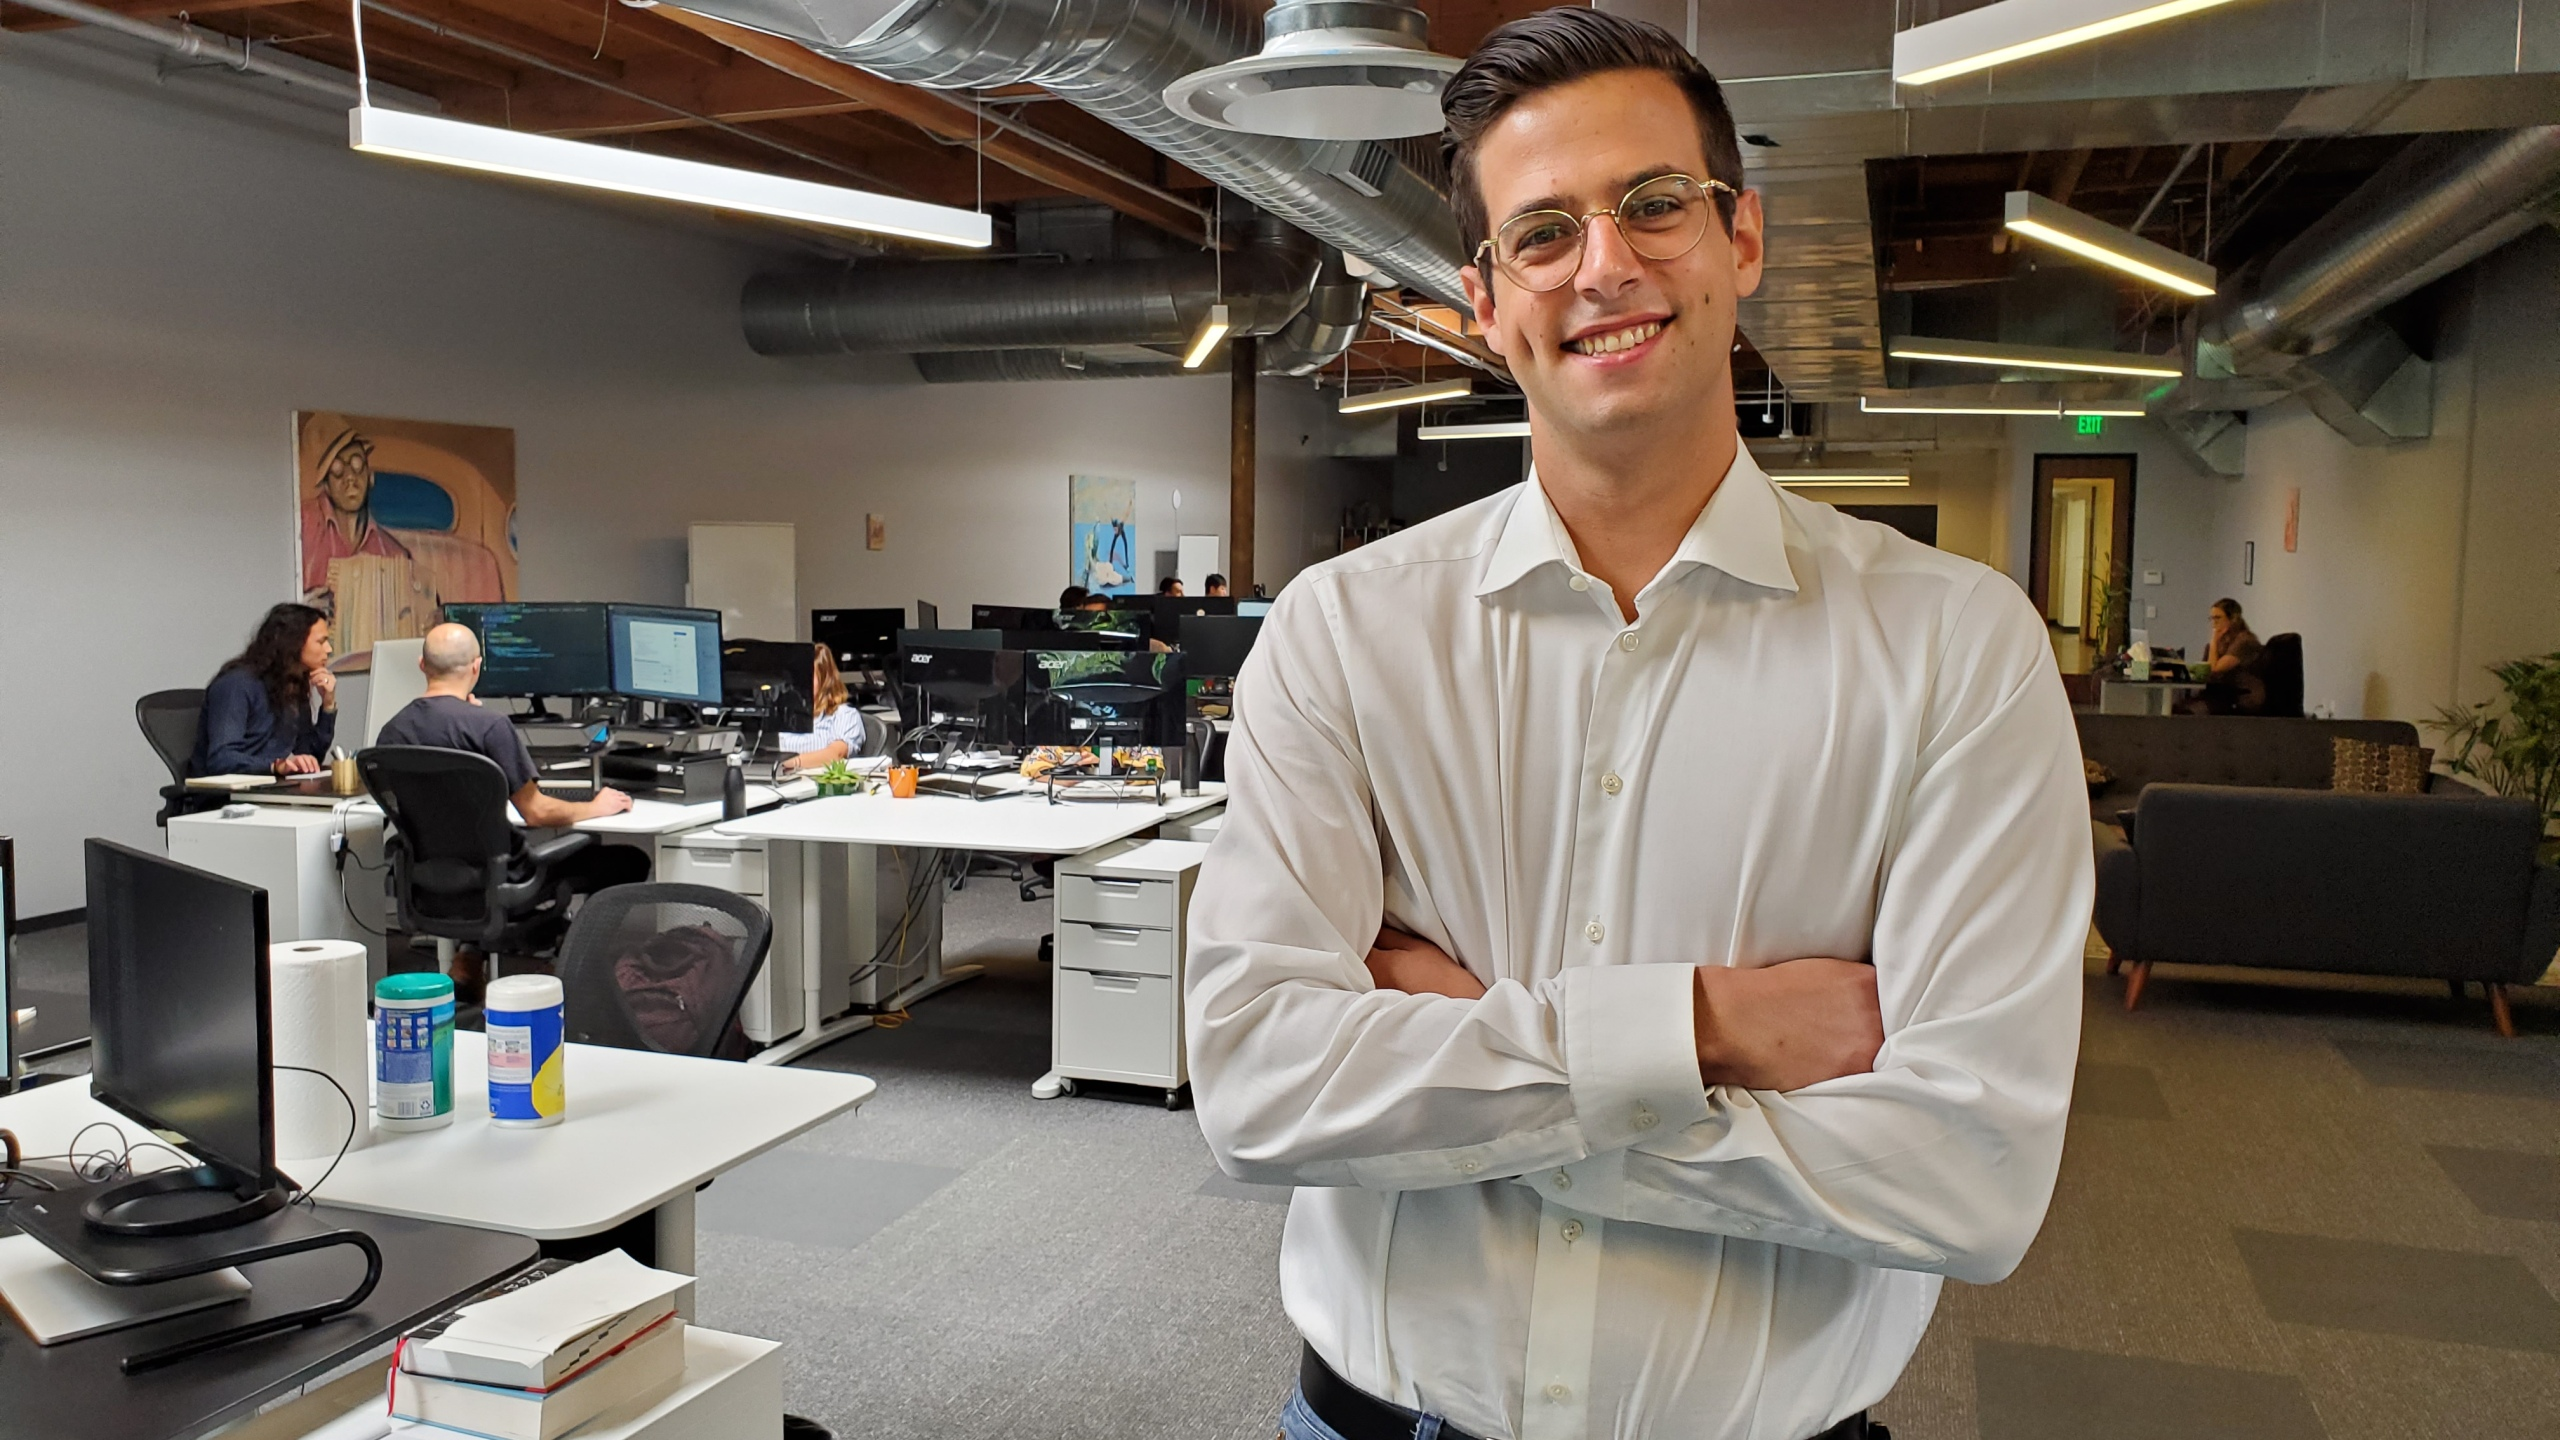 Ben Mones - CEO and Co-Founder Fama